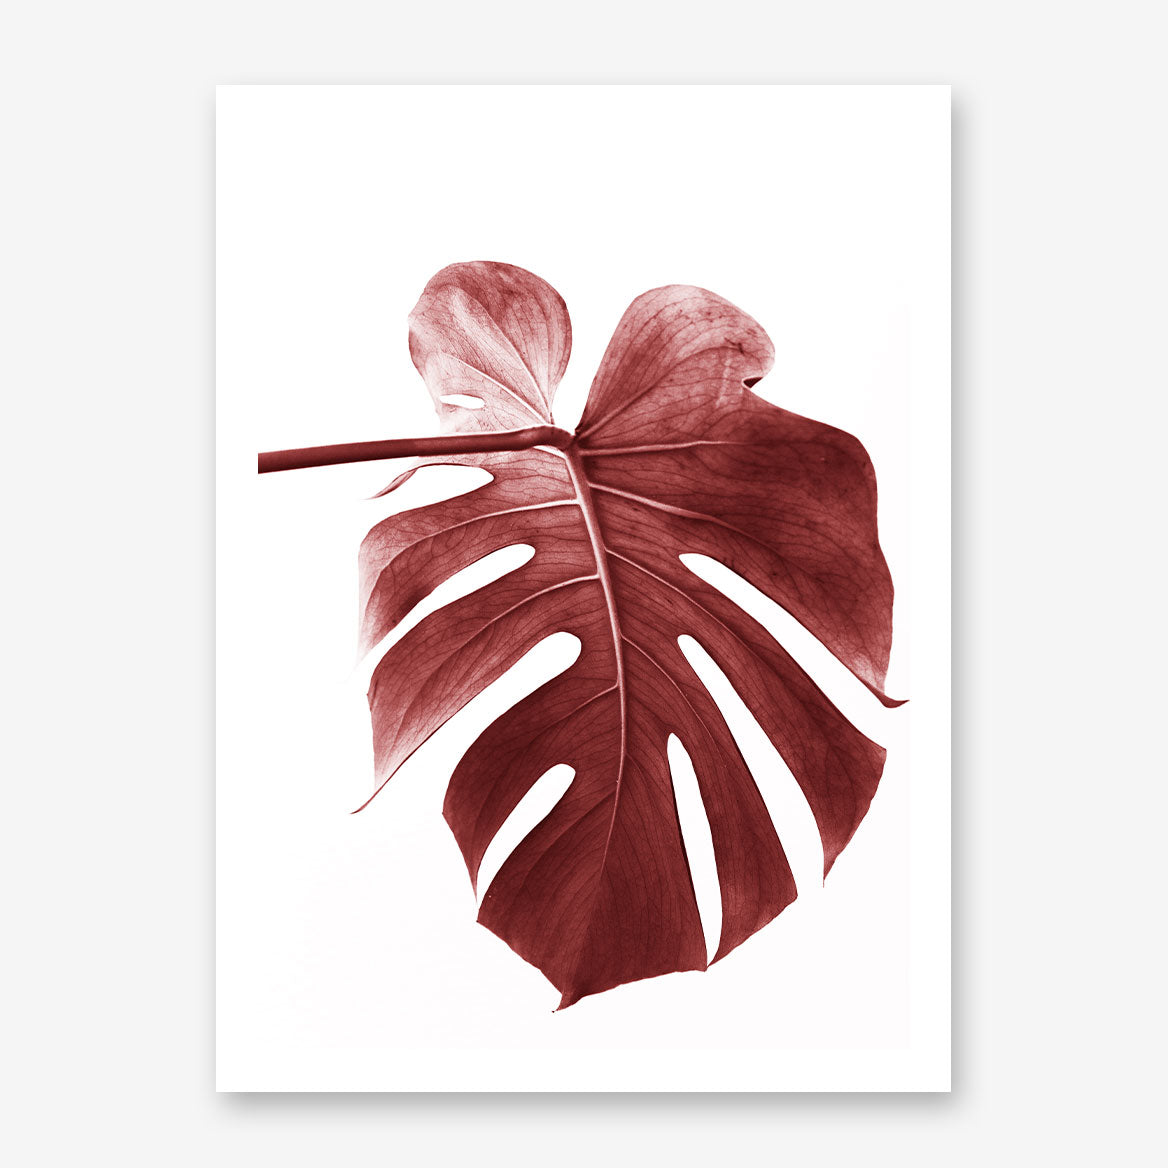 Nature inspired poster print, with a pale red leaf, on white background. Beautiful and modern wall art that will transform any room into a stylish place